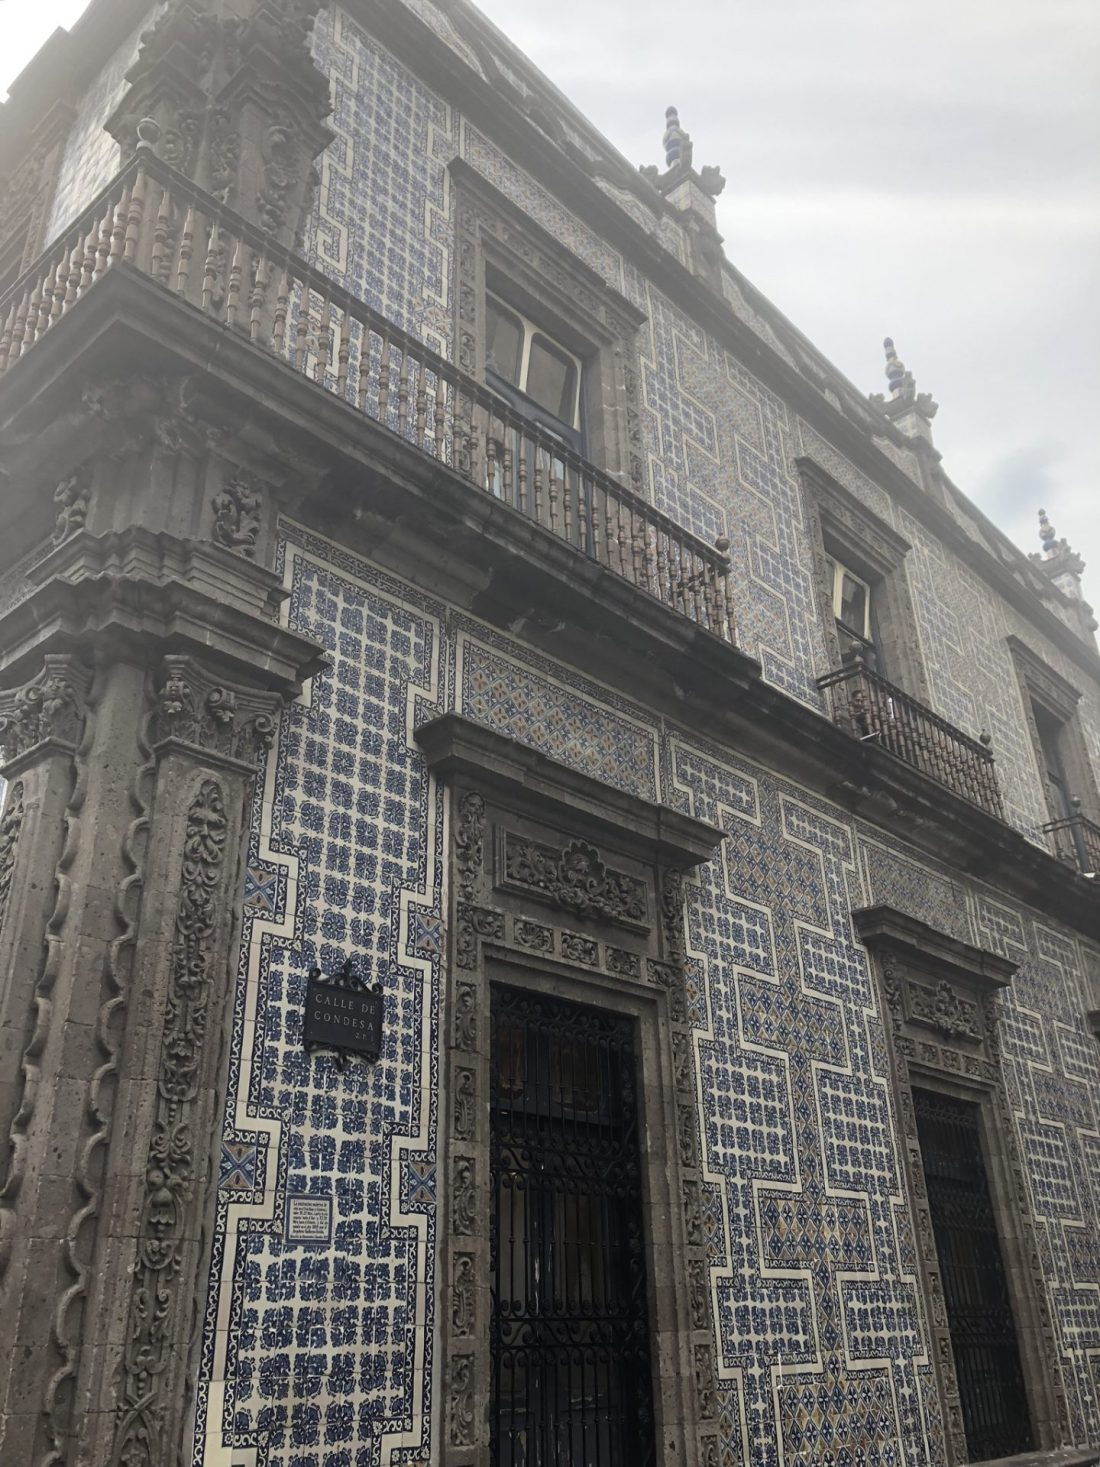 The House of Tiles, La Casa de Azulejos